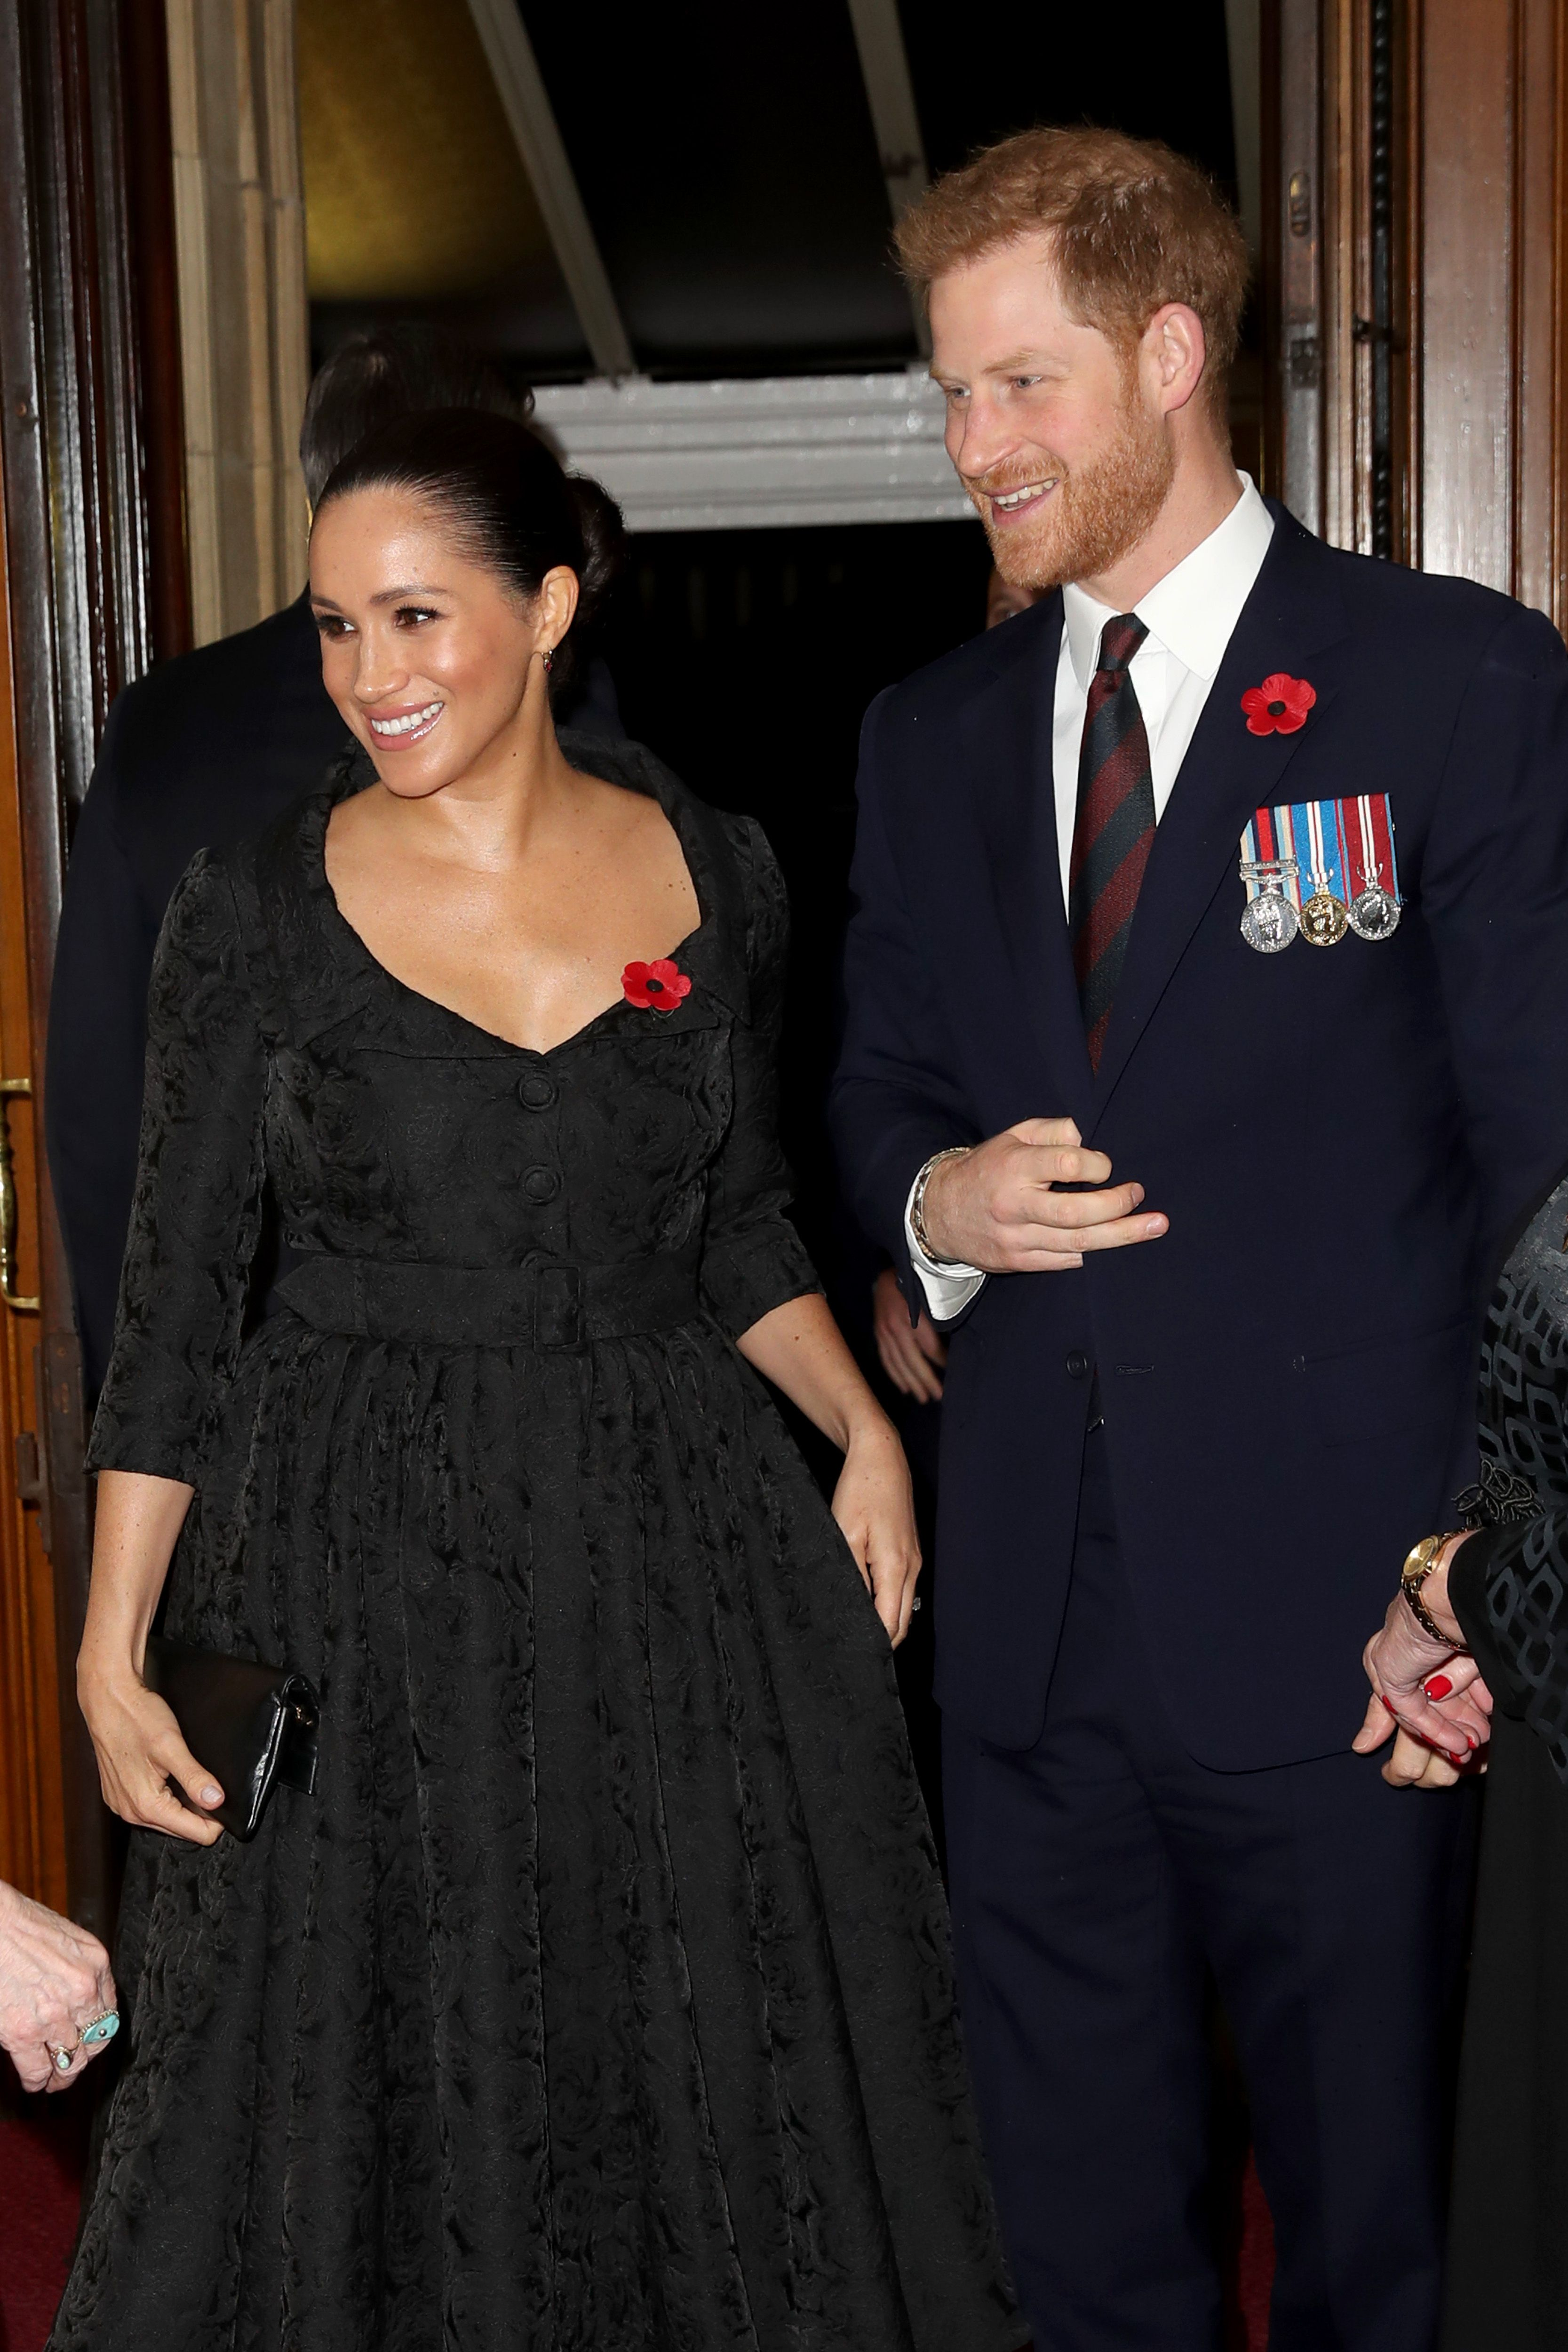 The Duke and Duchess of Sussex reunite with the Duke and Duchess of Cambridge at remembrance service